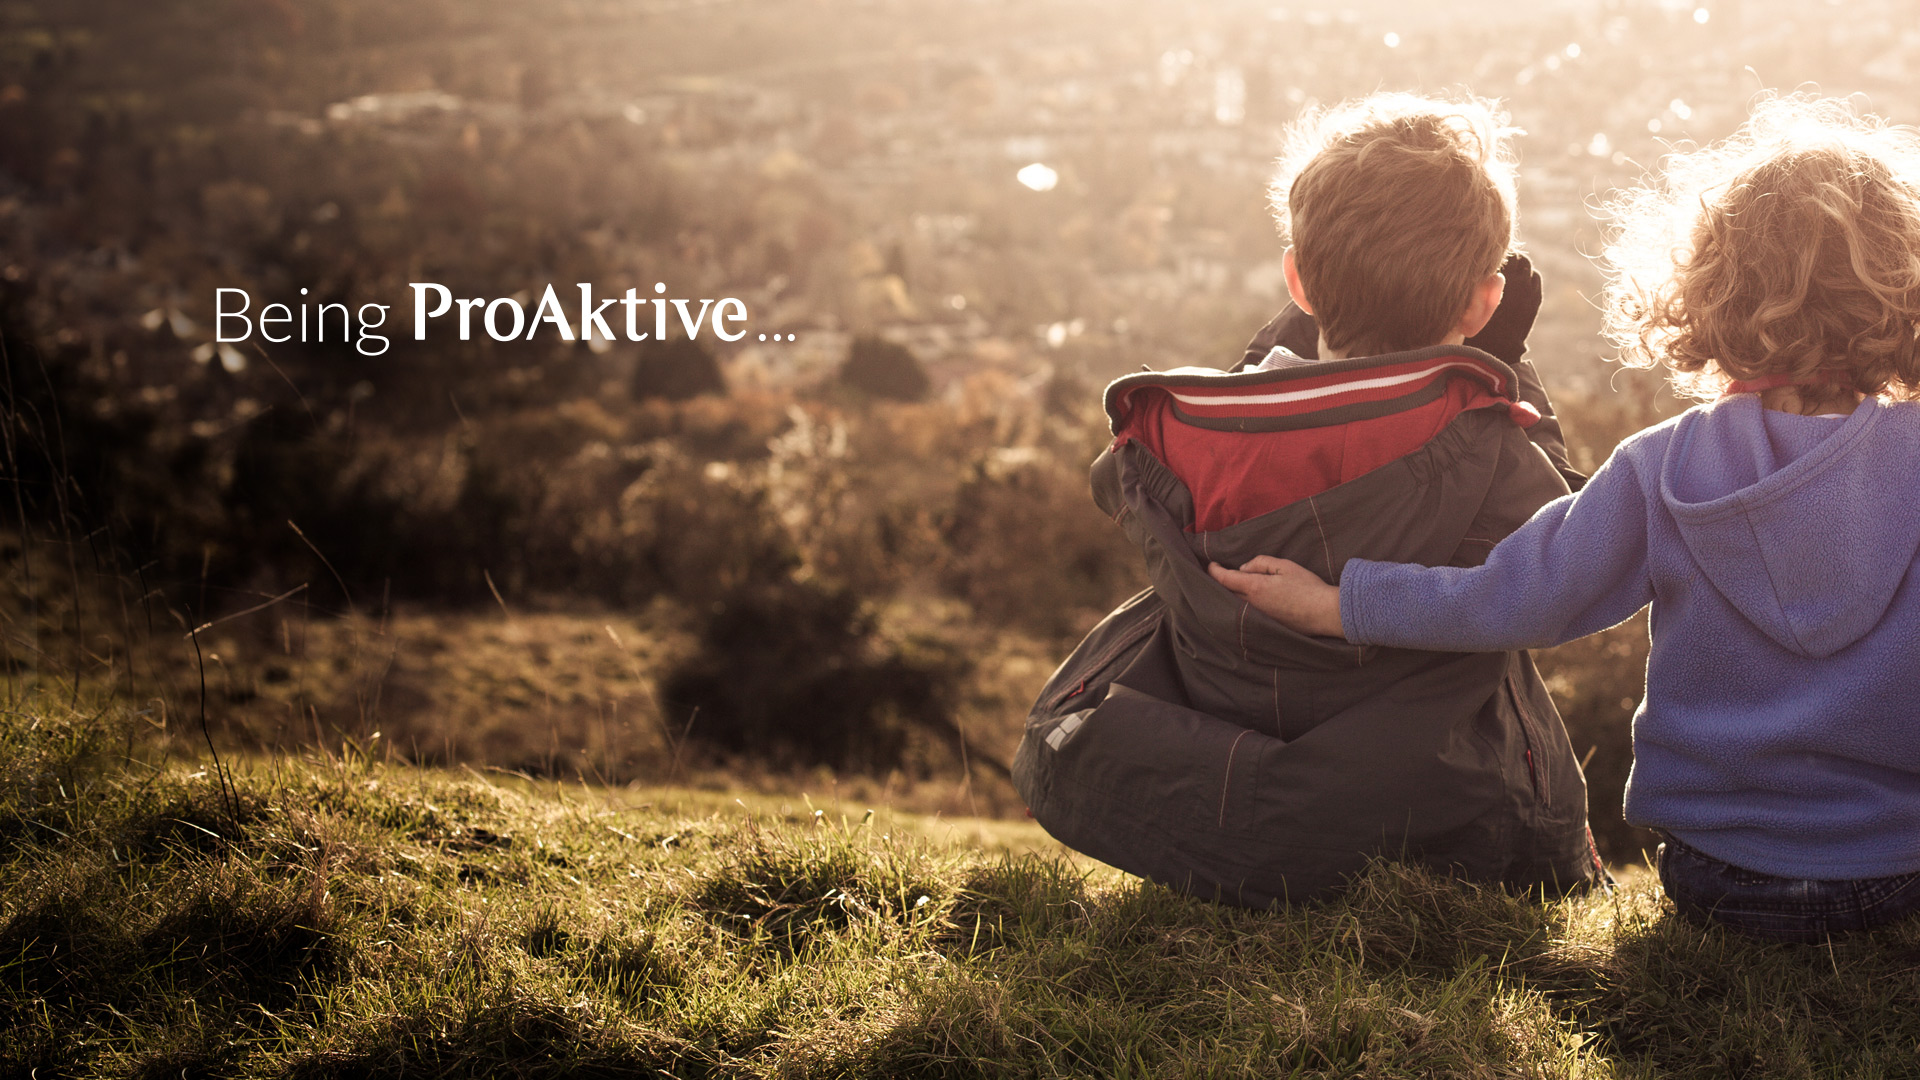 Being ProAktive Means...